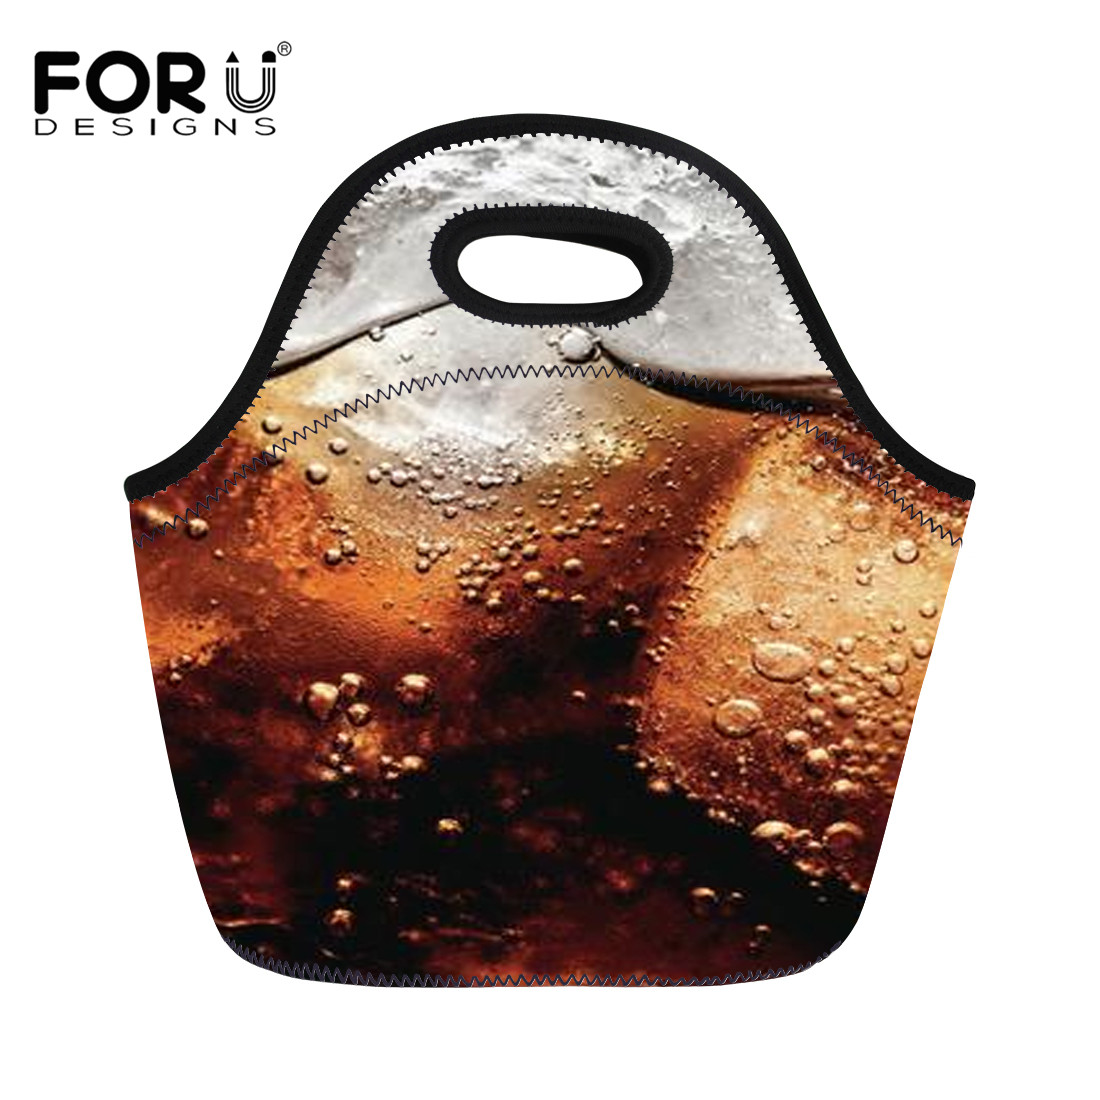 FORUDESIGNS Lunch Bag 2018 New Fashion Kid Women Men Soda Pattern Portable Picnic Insulated Food Storage Box Tote Lunch Bags